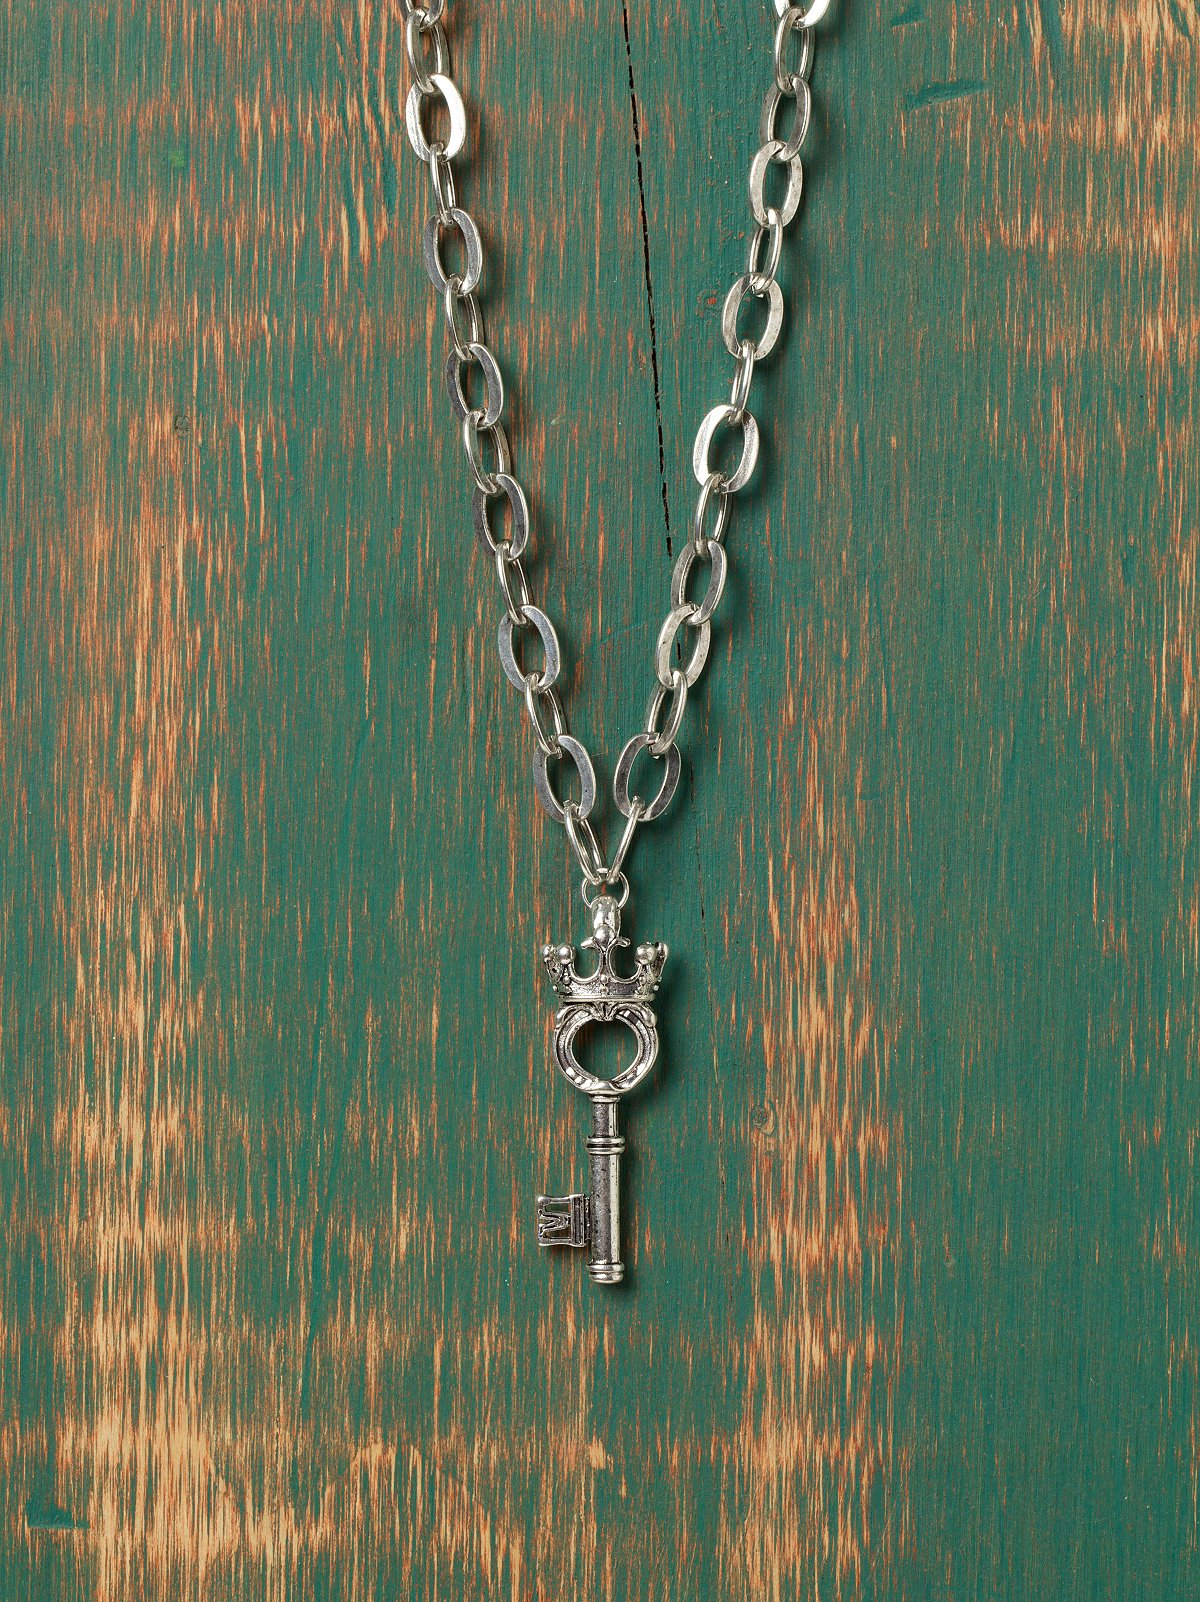 Crowned Key Pendant